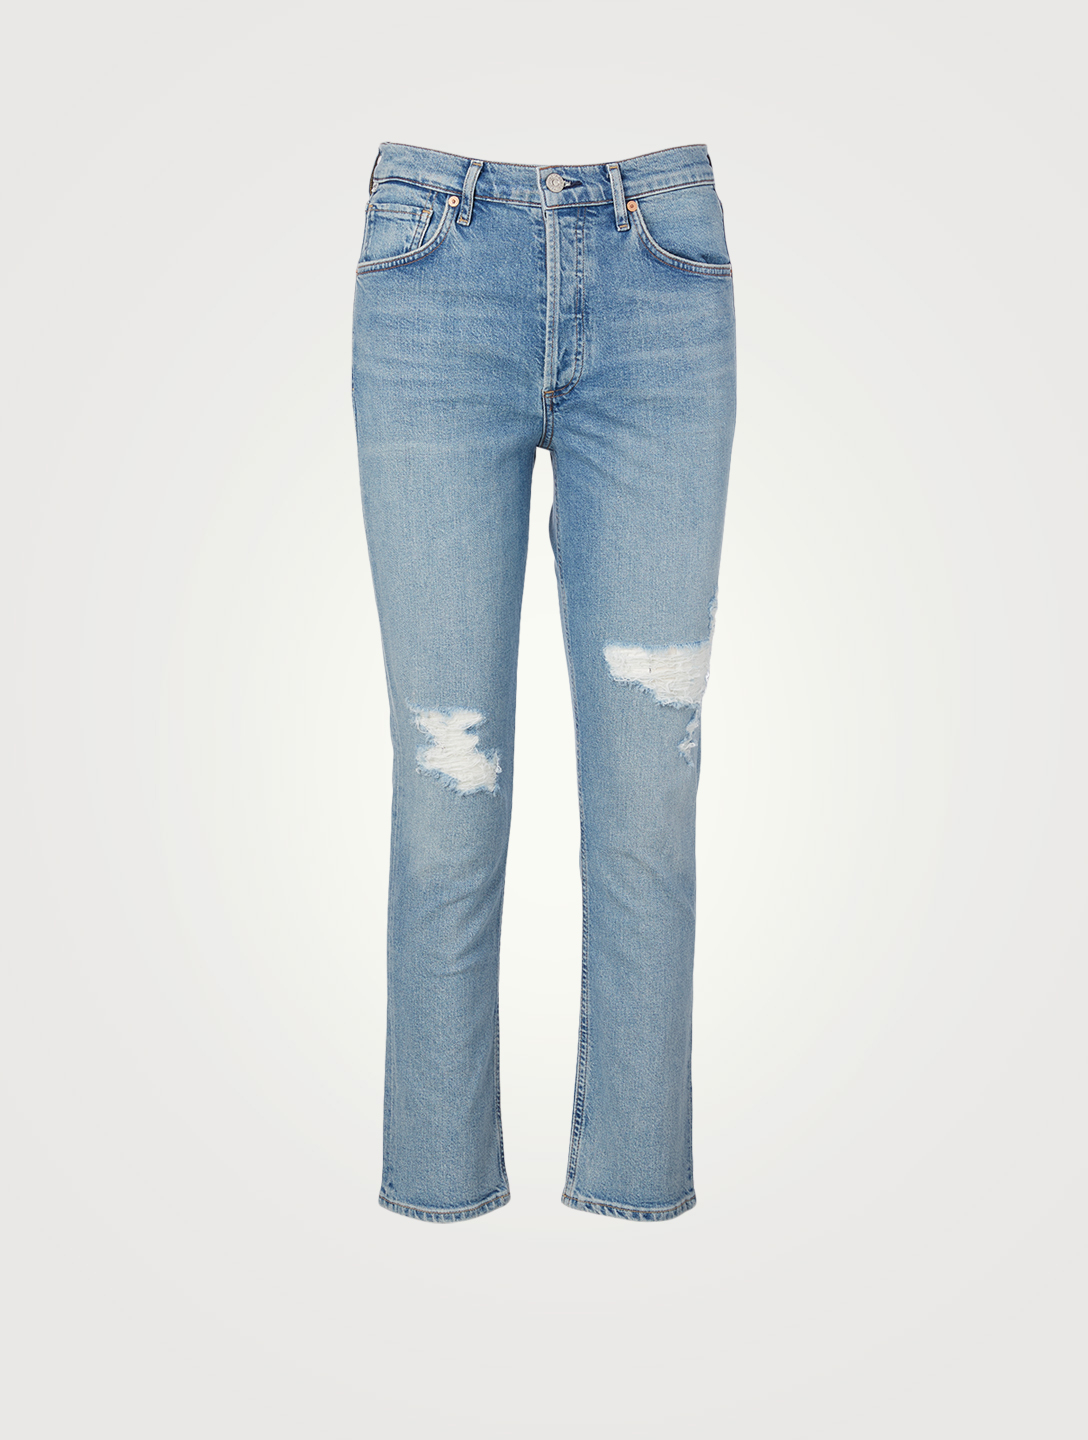 CITIZENS OF HUMANITY Charlotte High-Waisted Straight Jeans Women's Blue